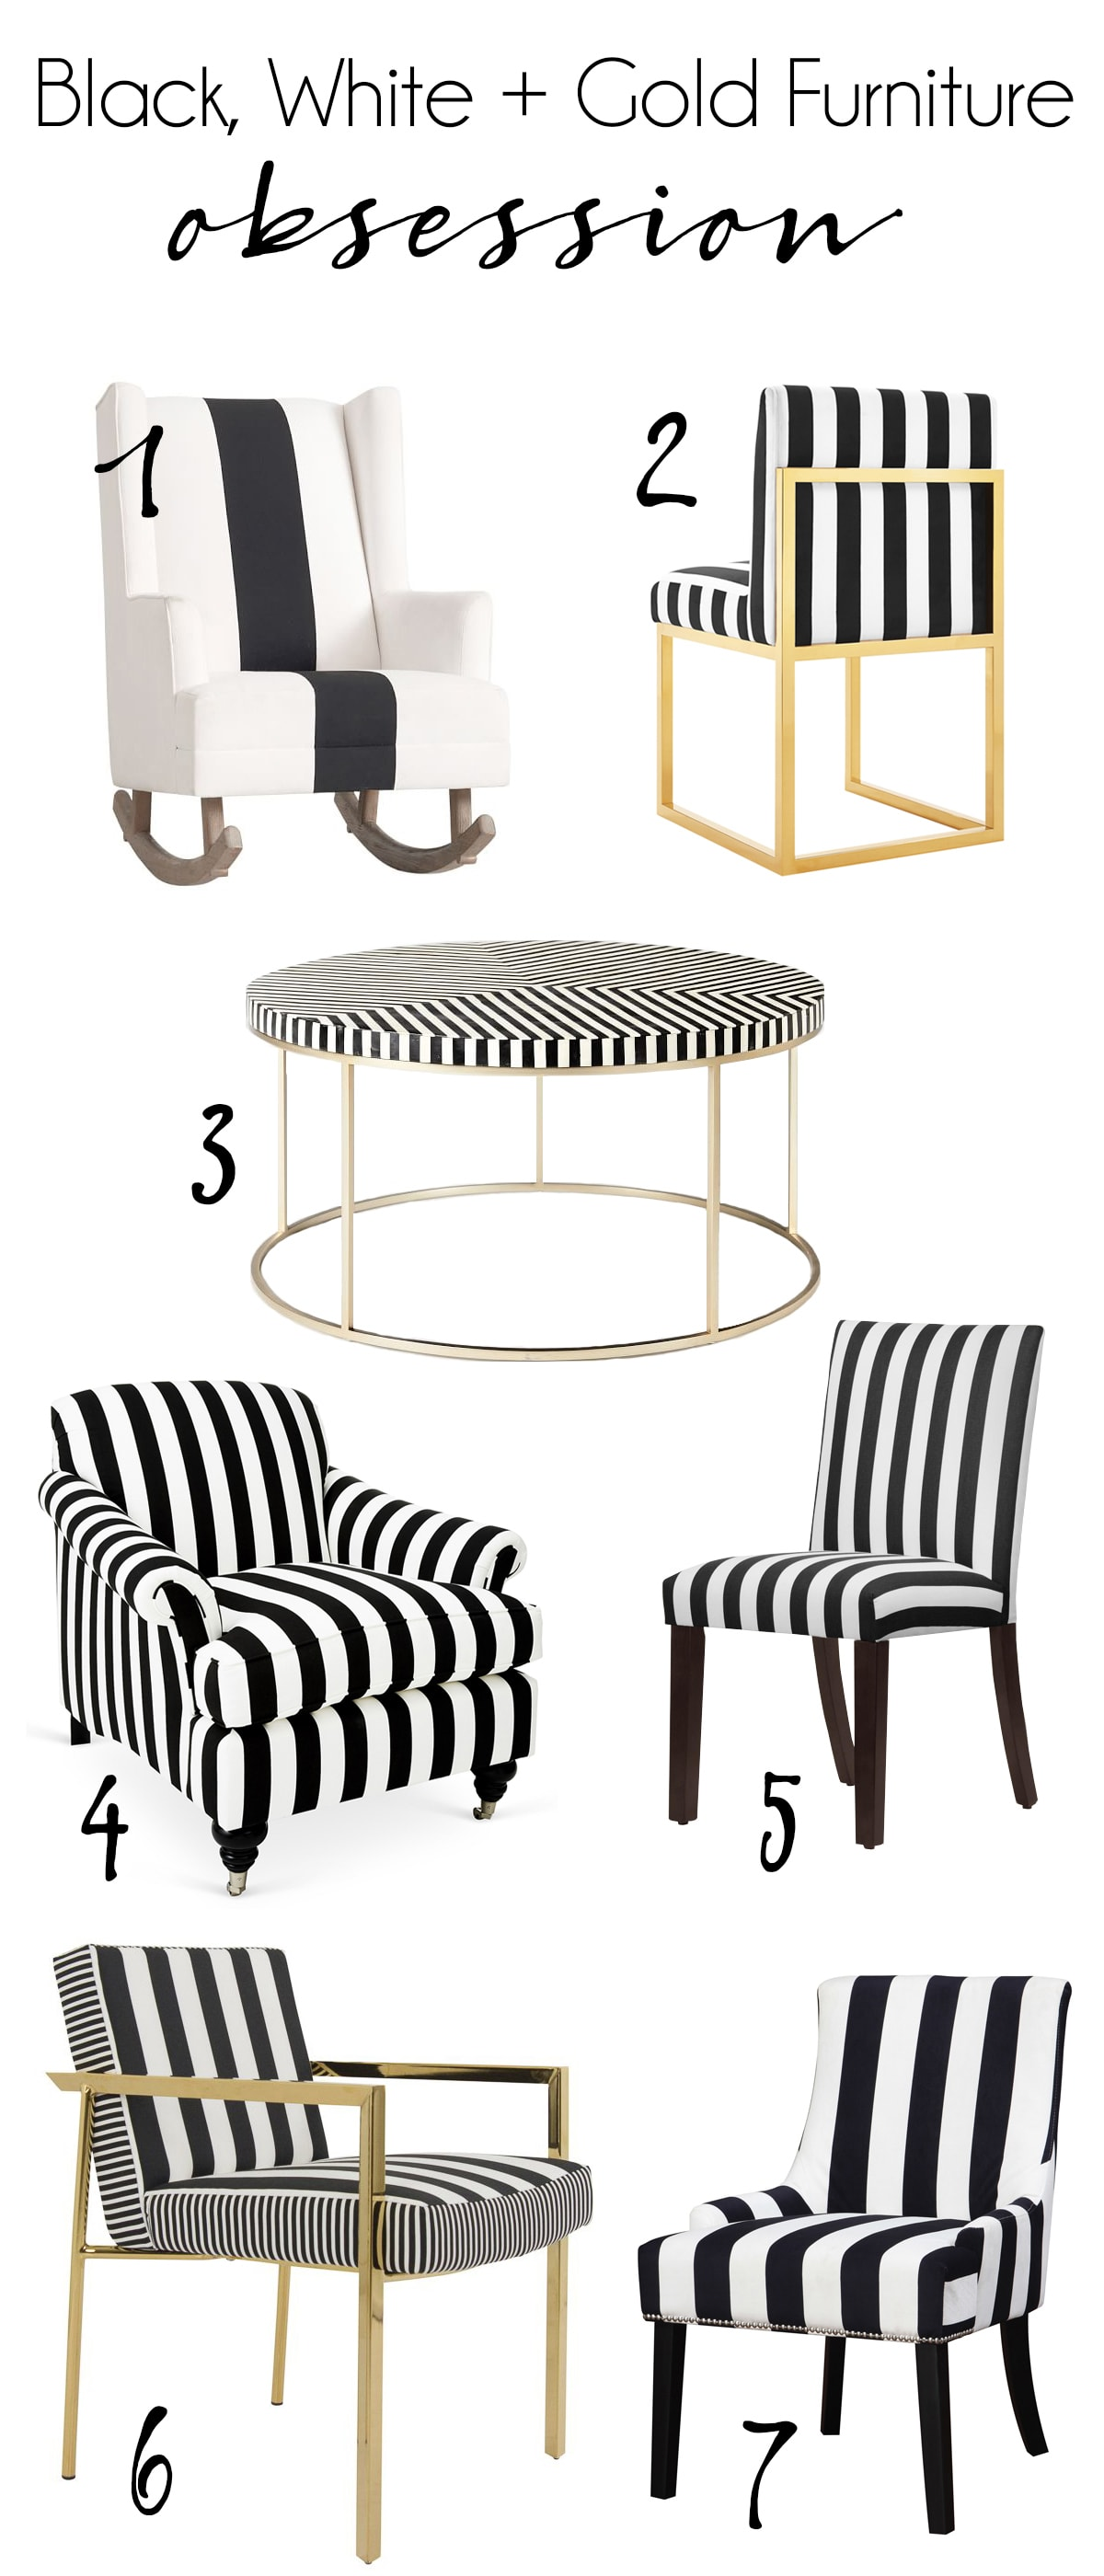 black and white striped furniture obsession with gold accents